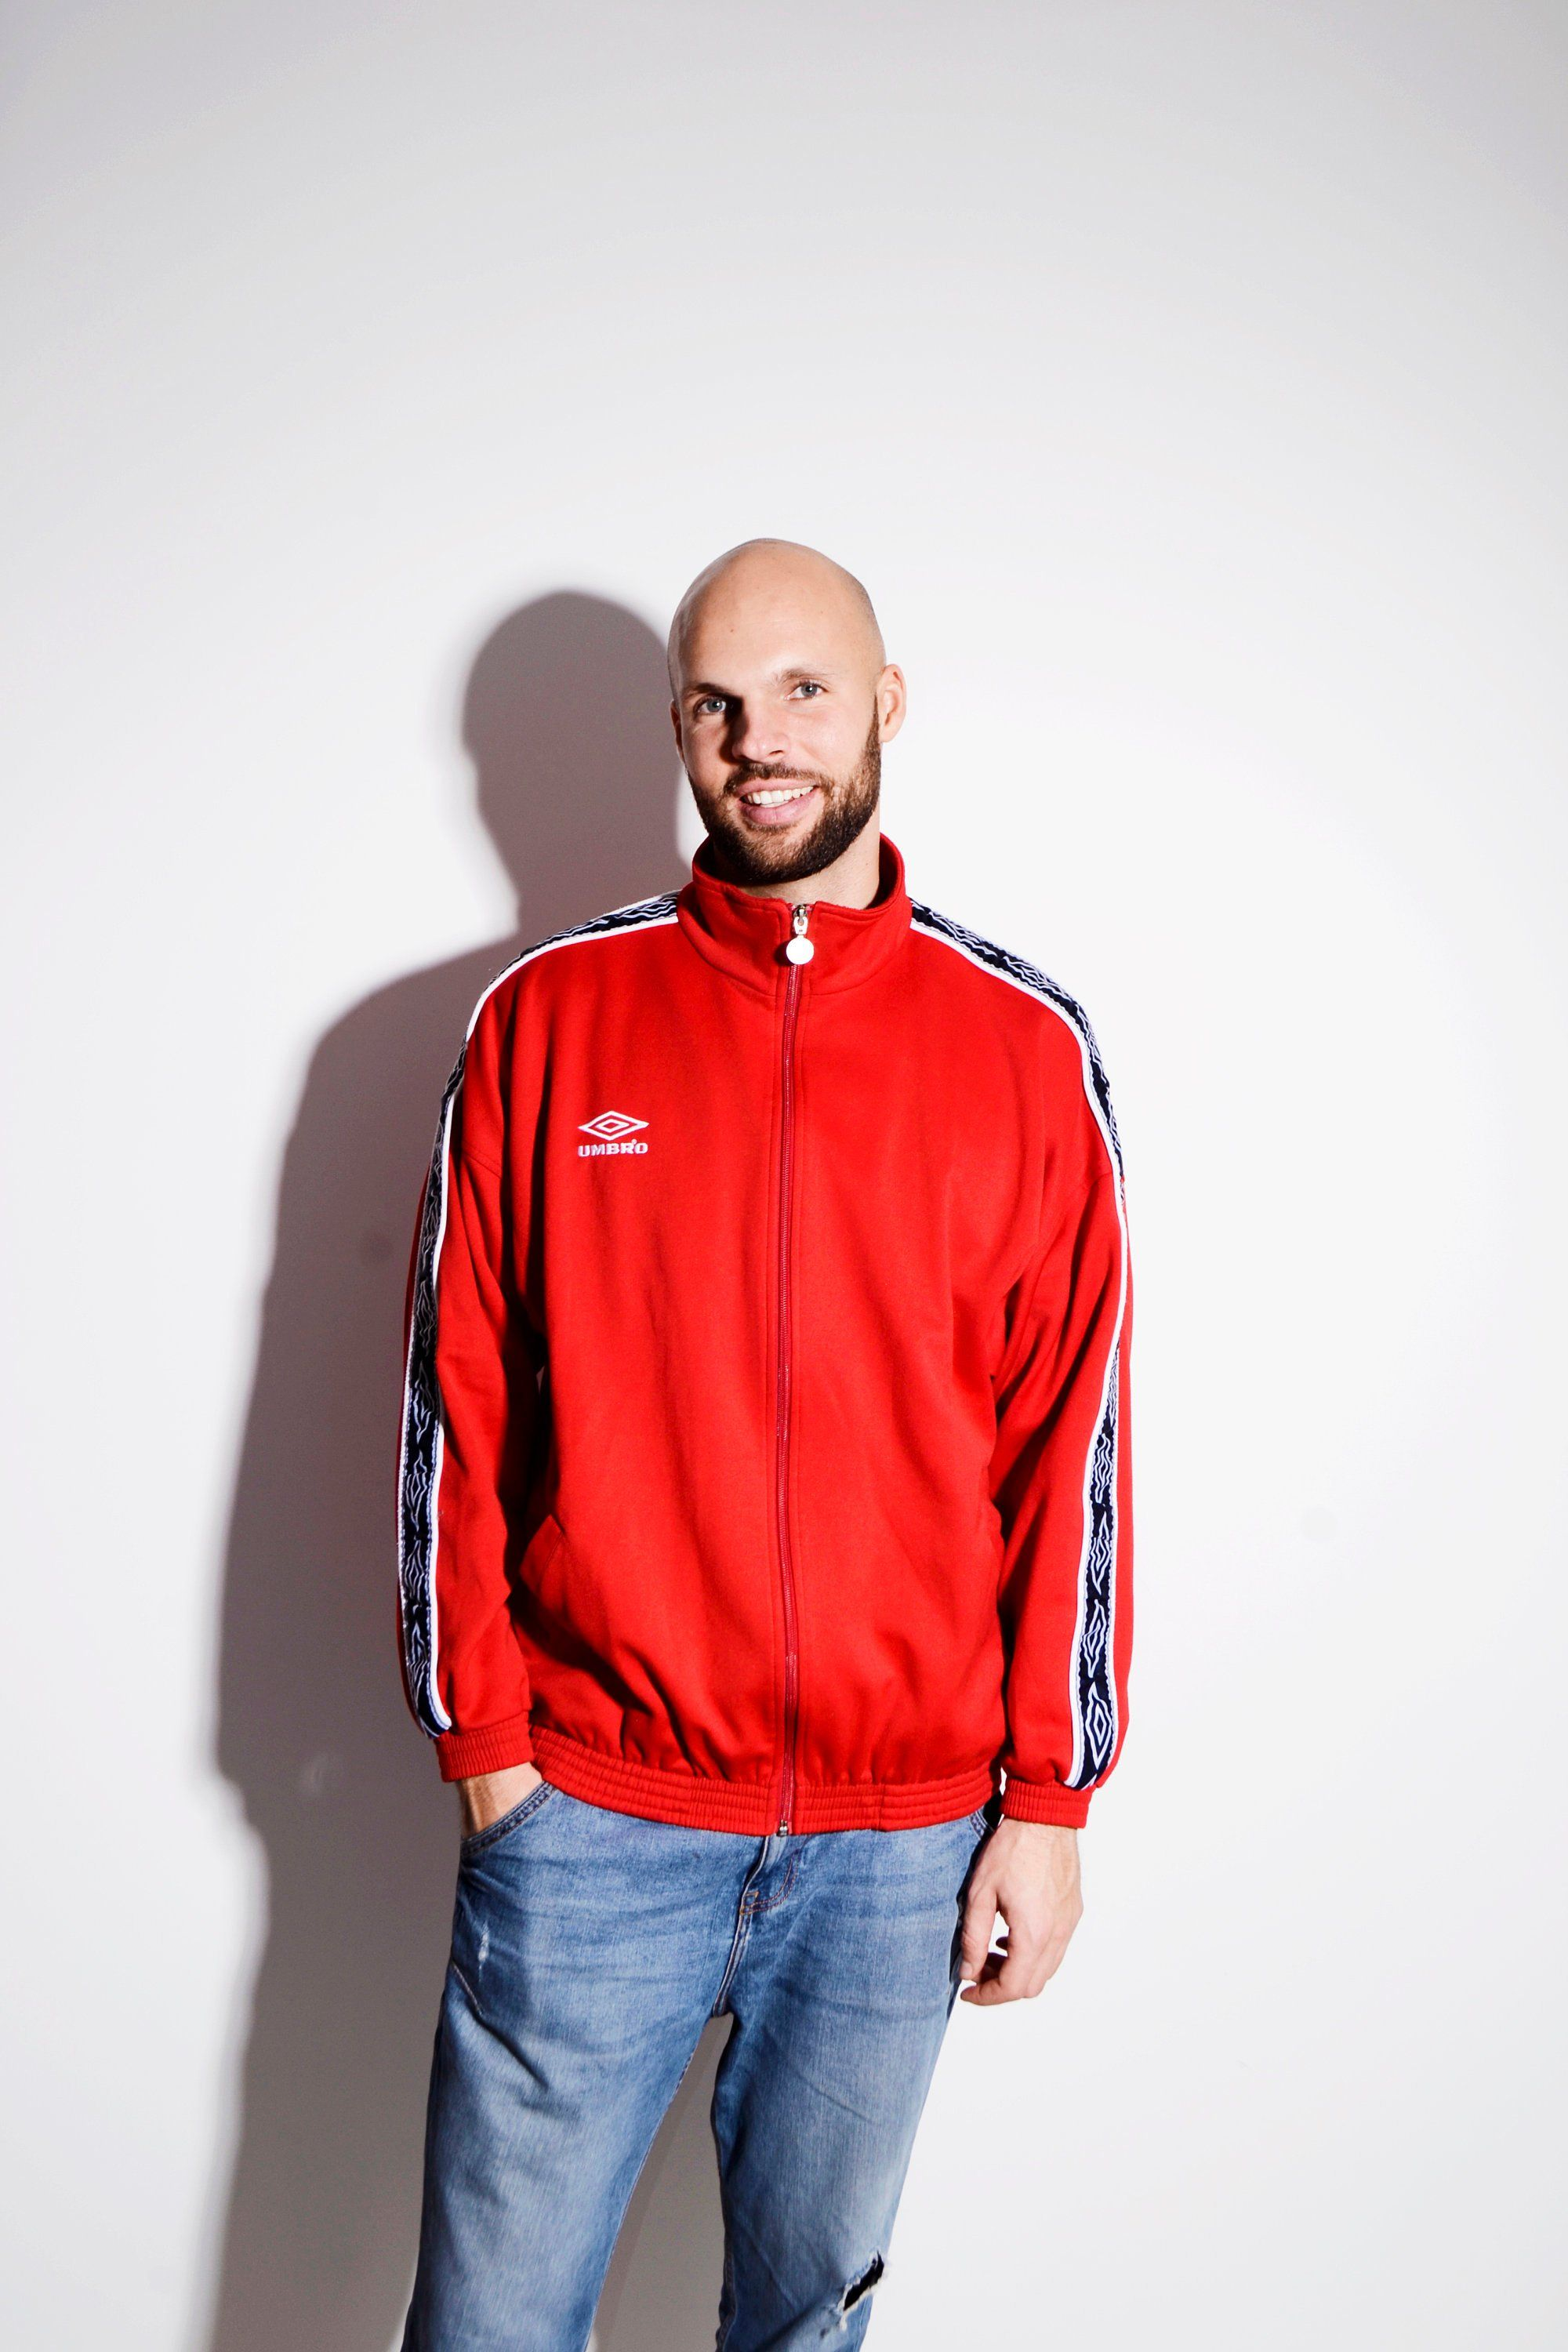 f80db5b867 UMBRO vintage red tracksuit top jacket | 2000's style festival full zip  sport jacket online store for men | Size - XL